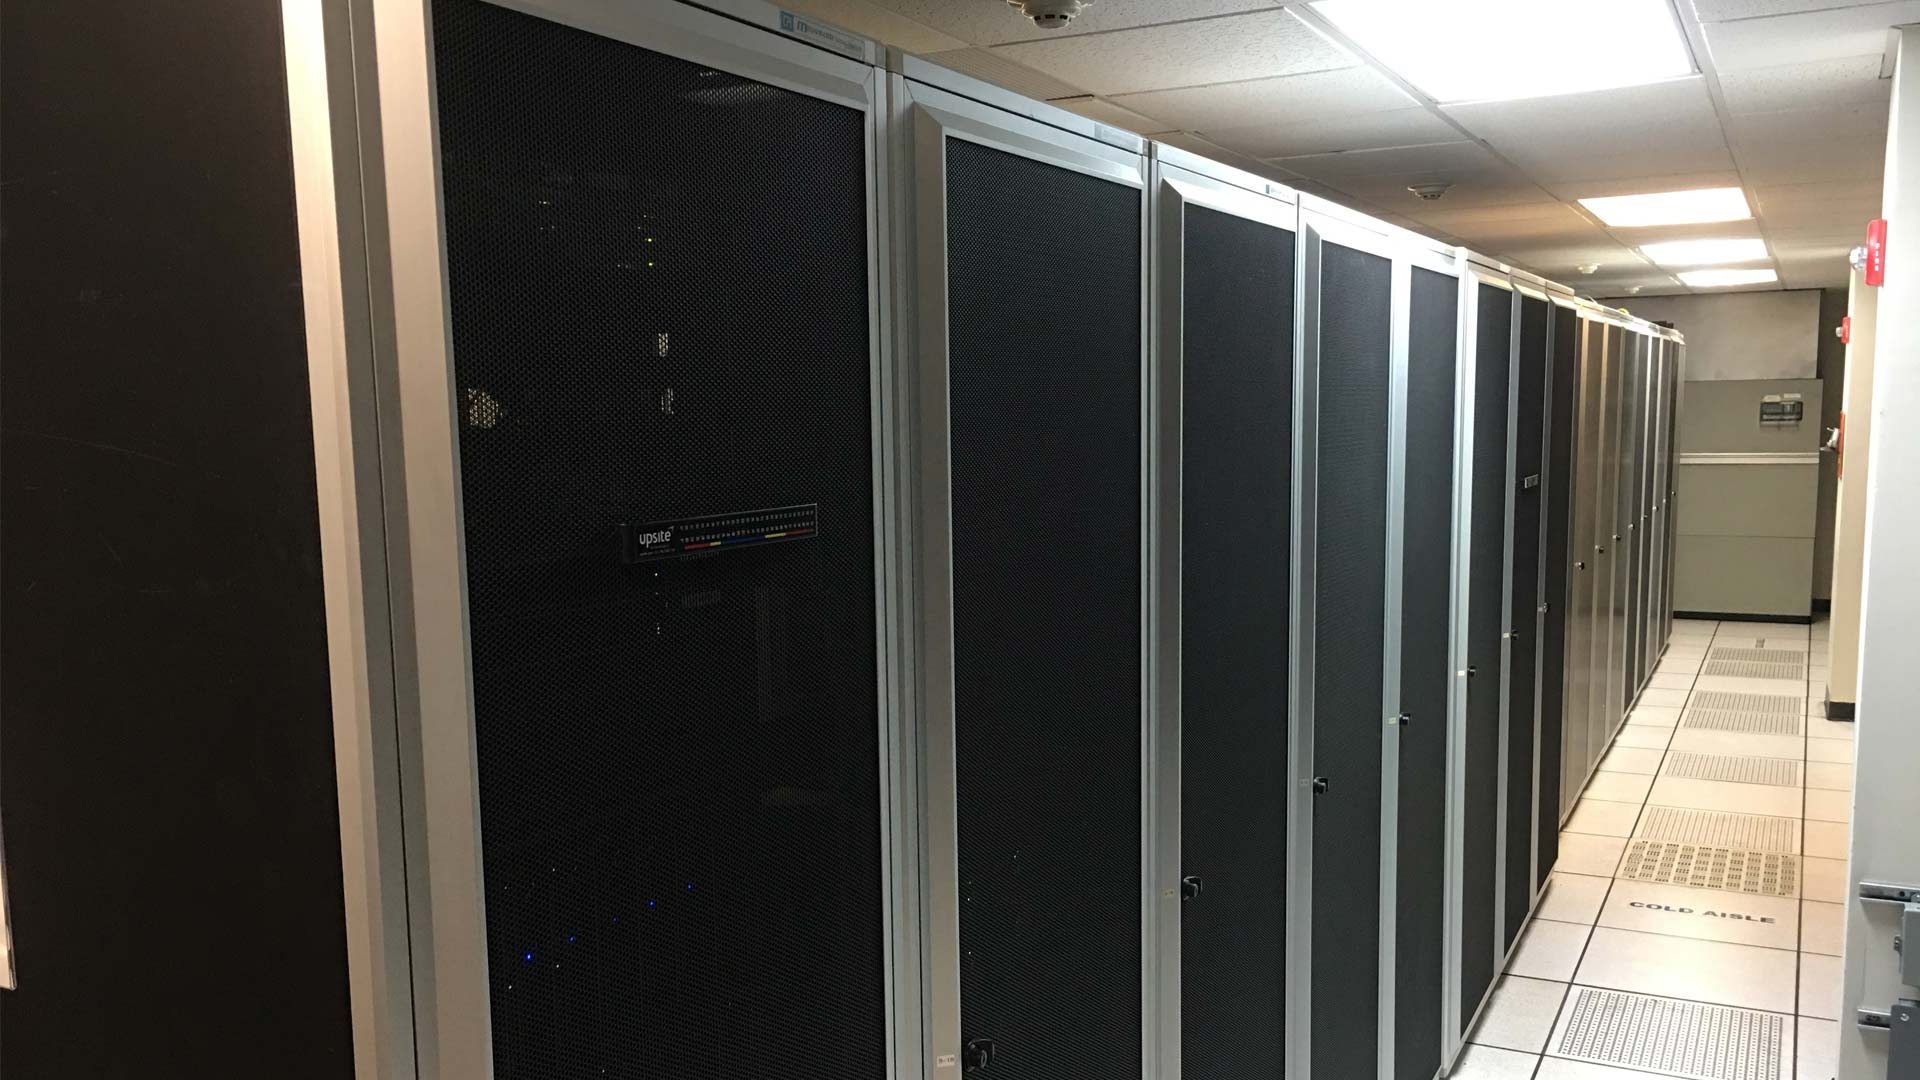 Our data center that is regularly audited.